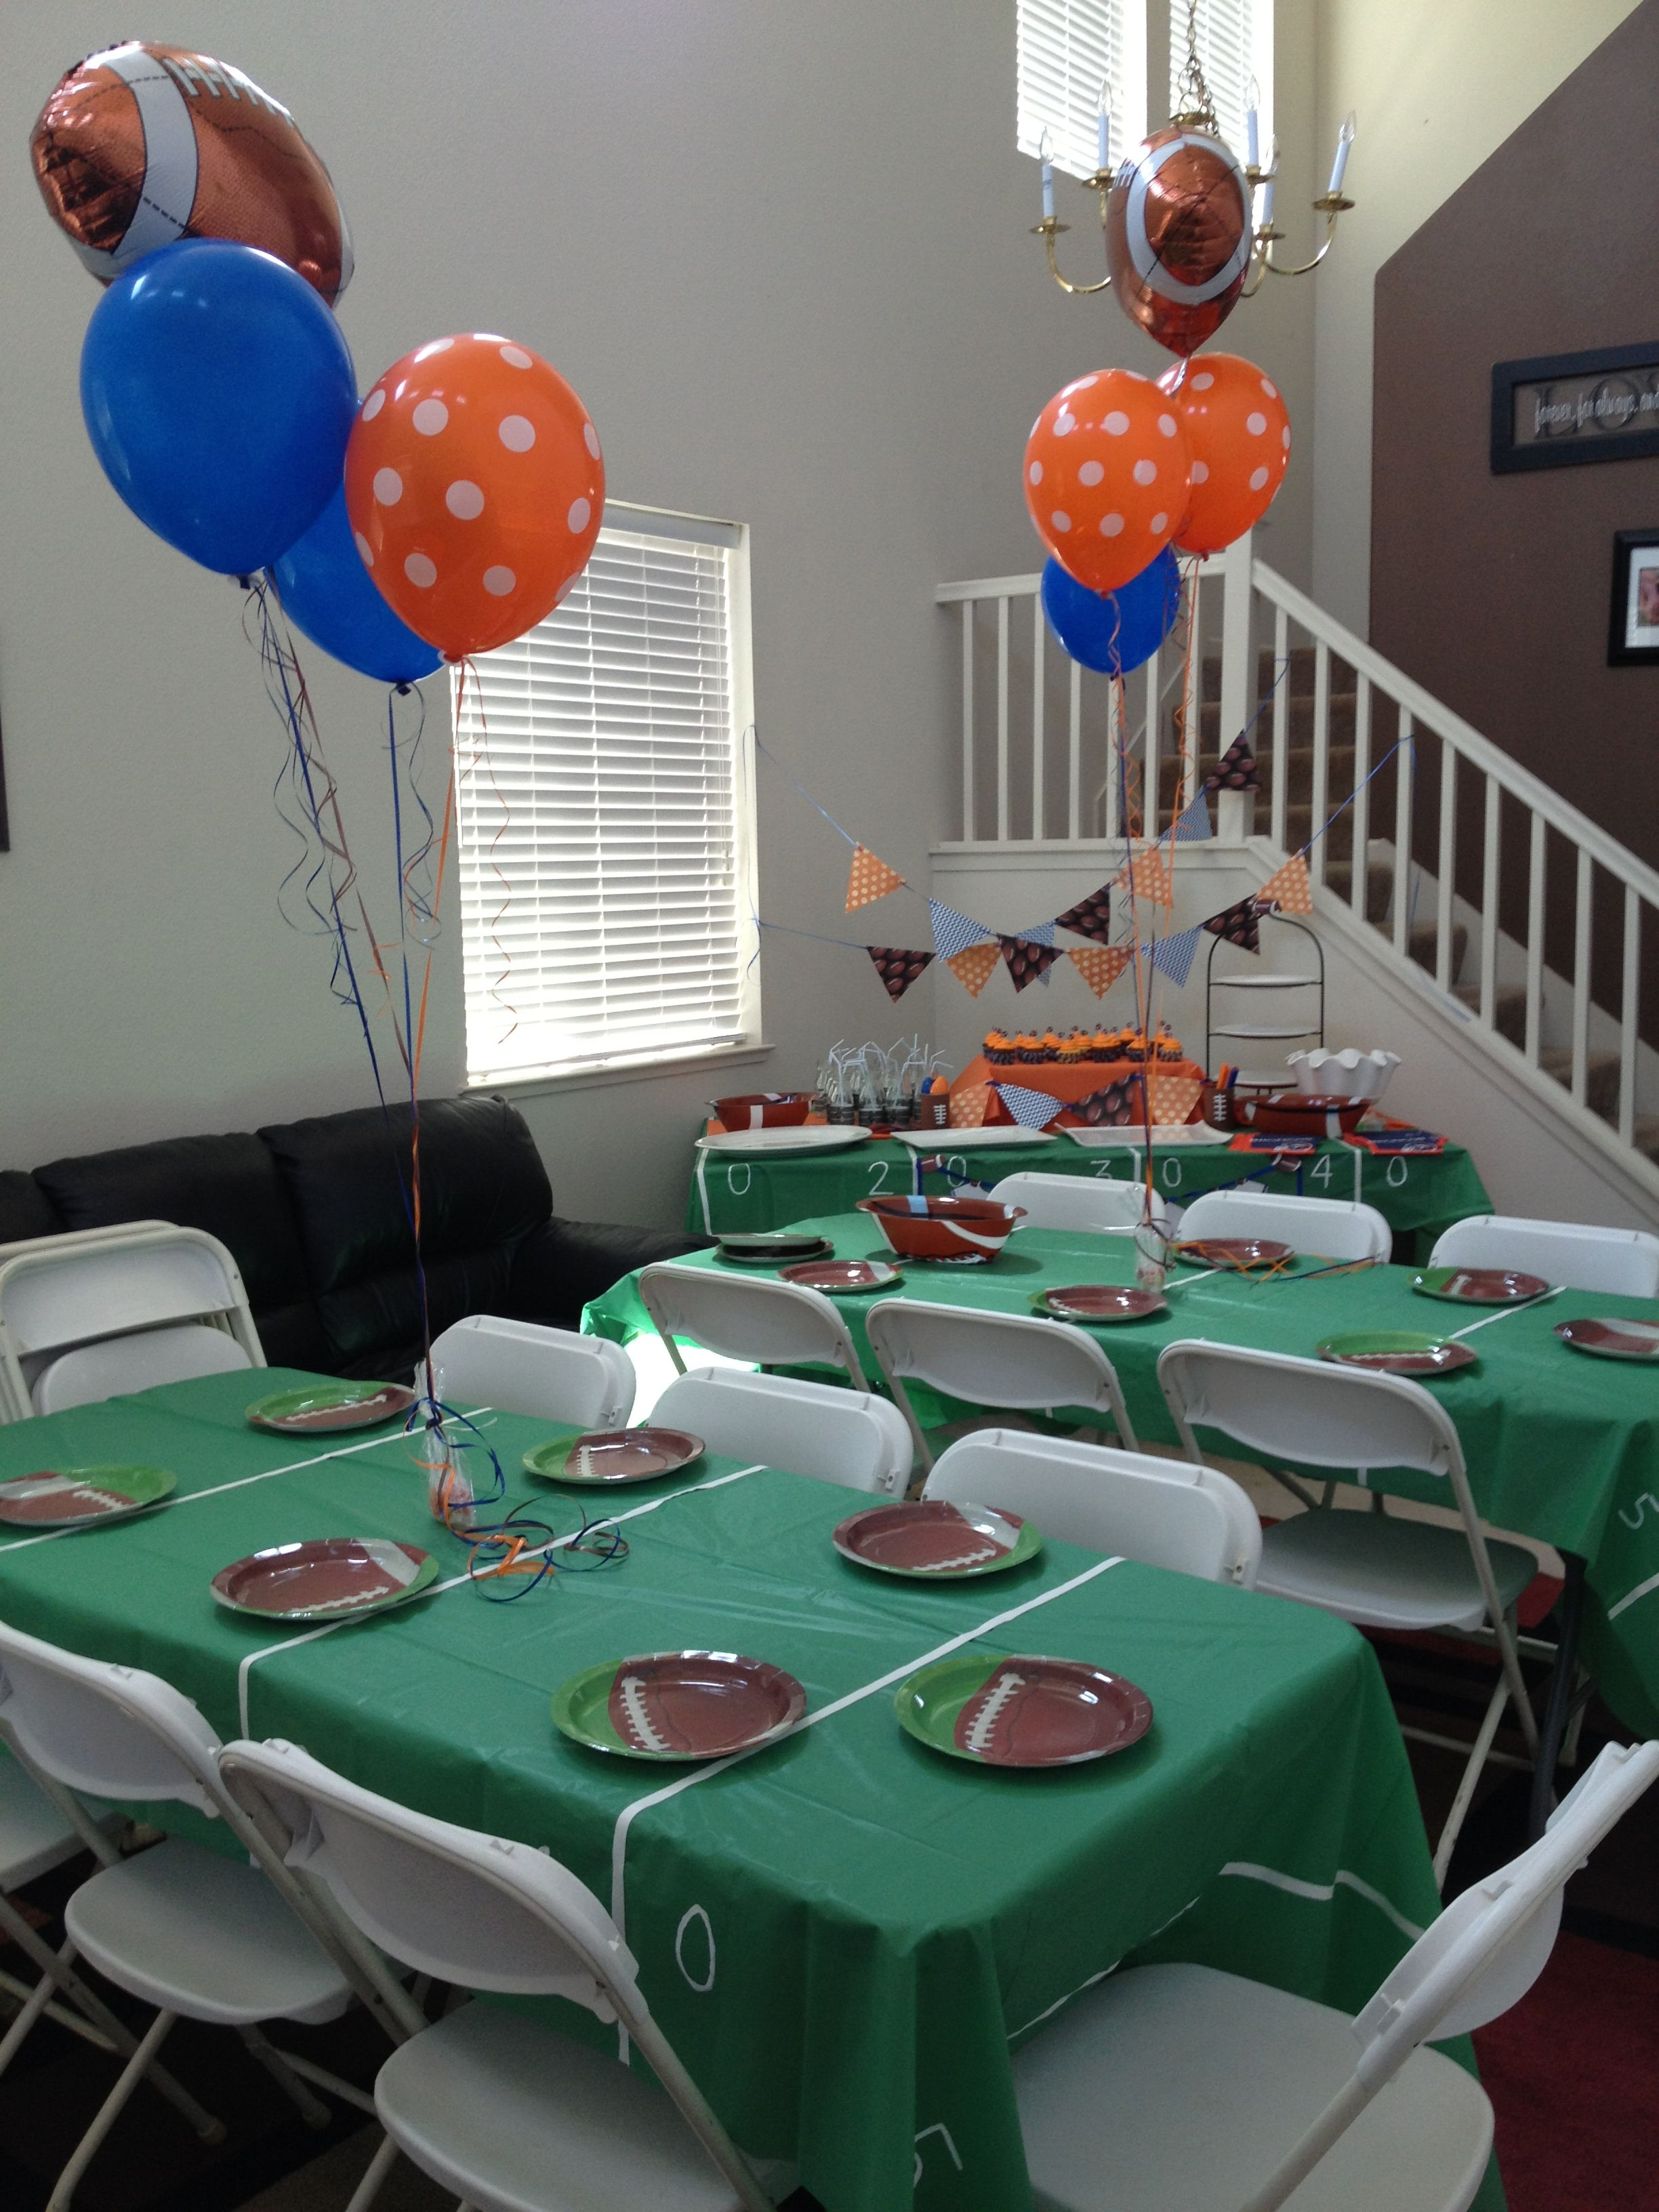 Football baby shower party ideas pinterest football for Dekoration fur babyparty